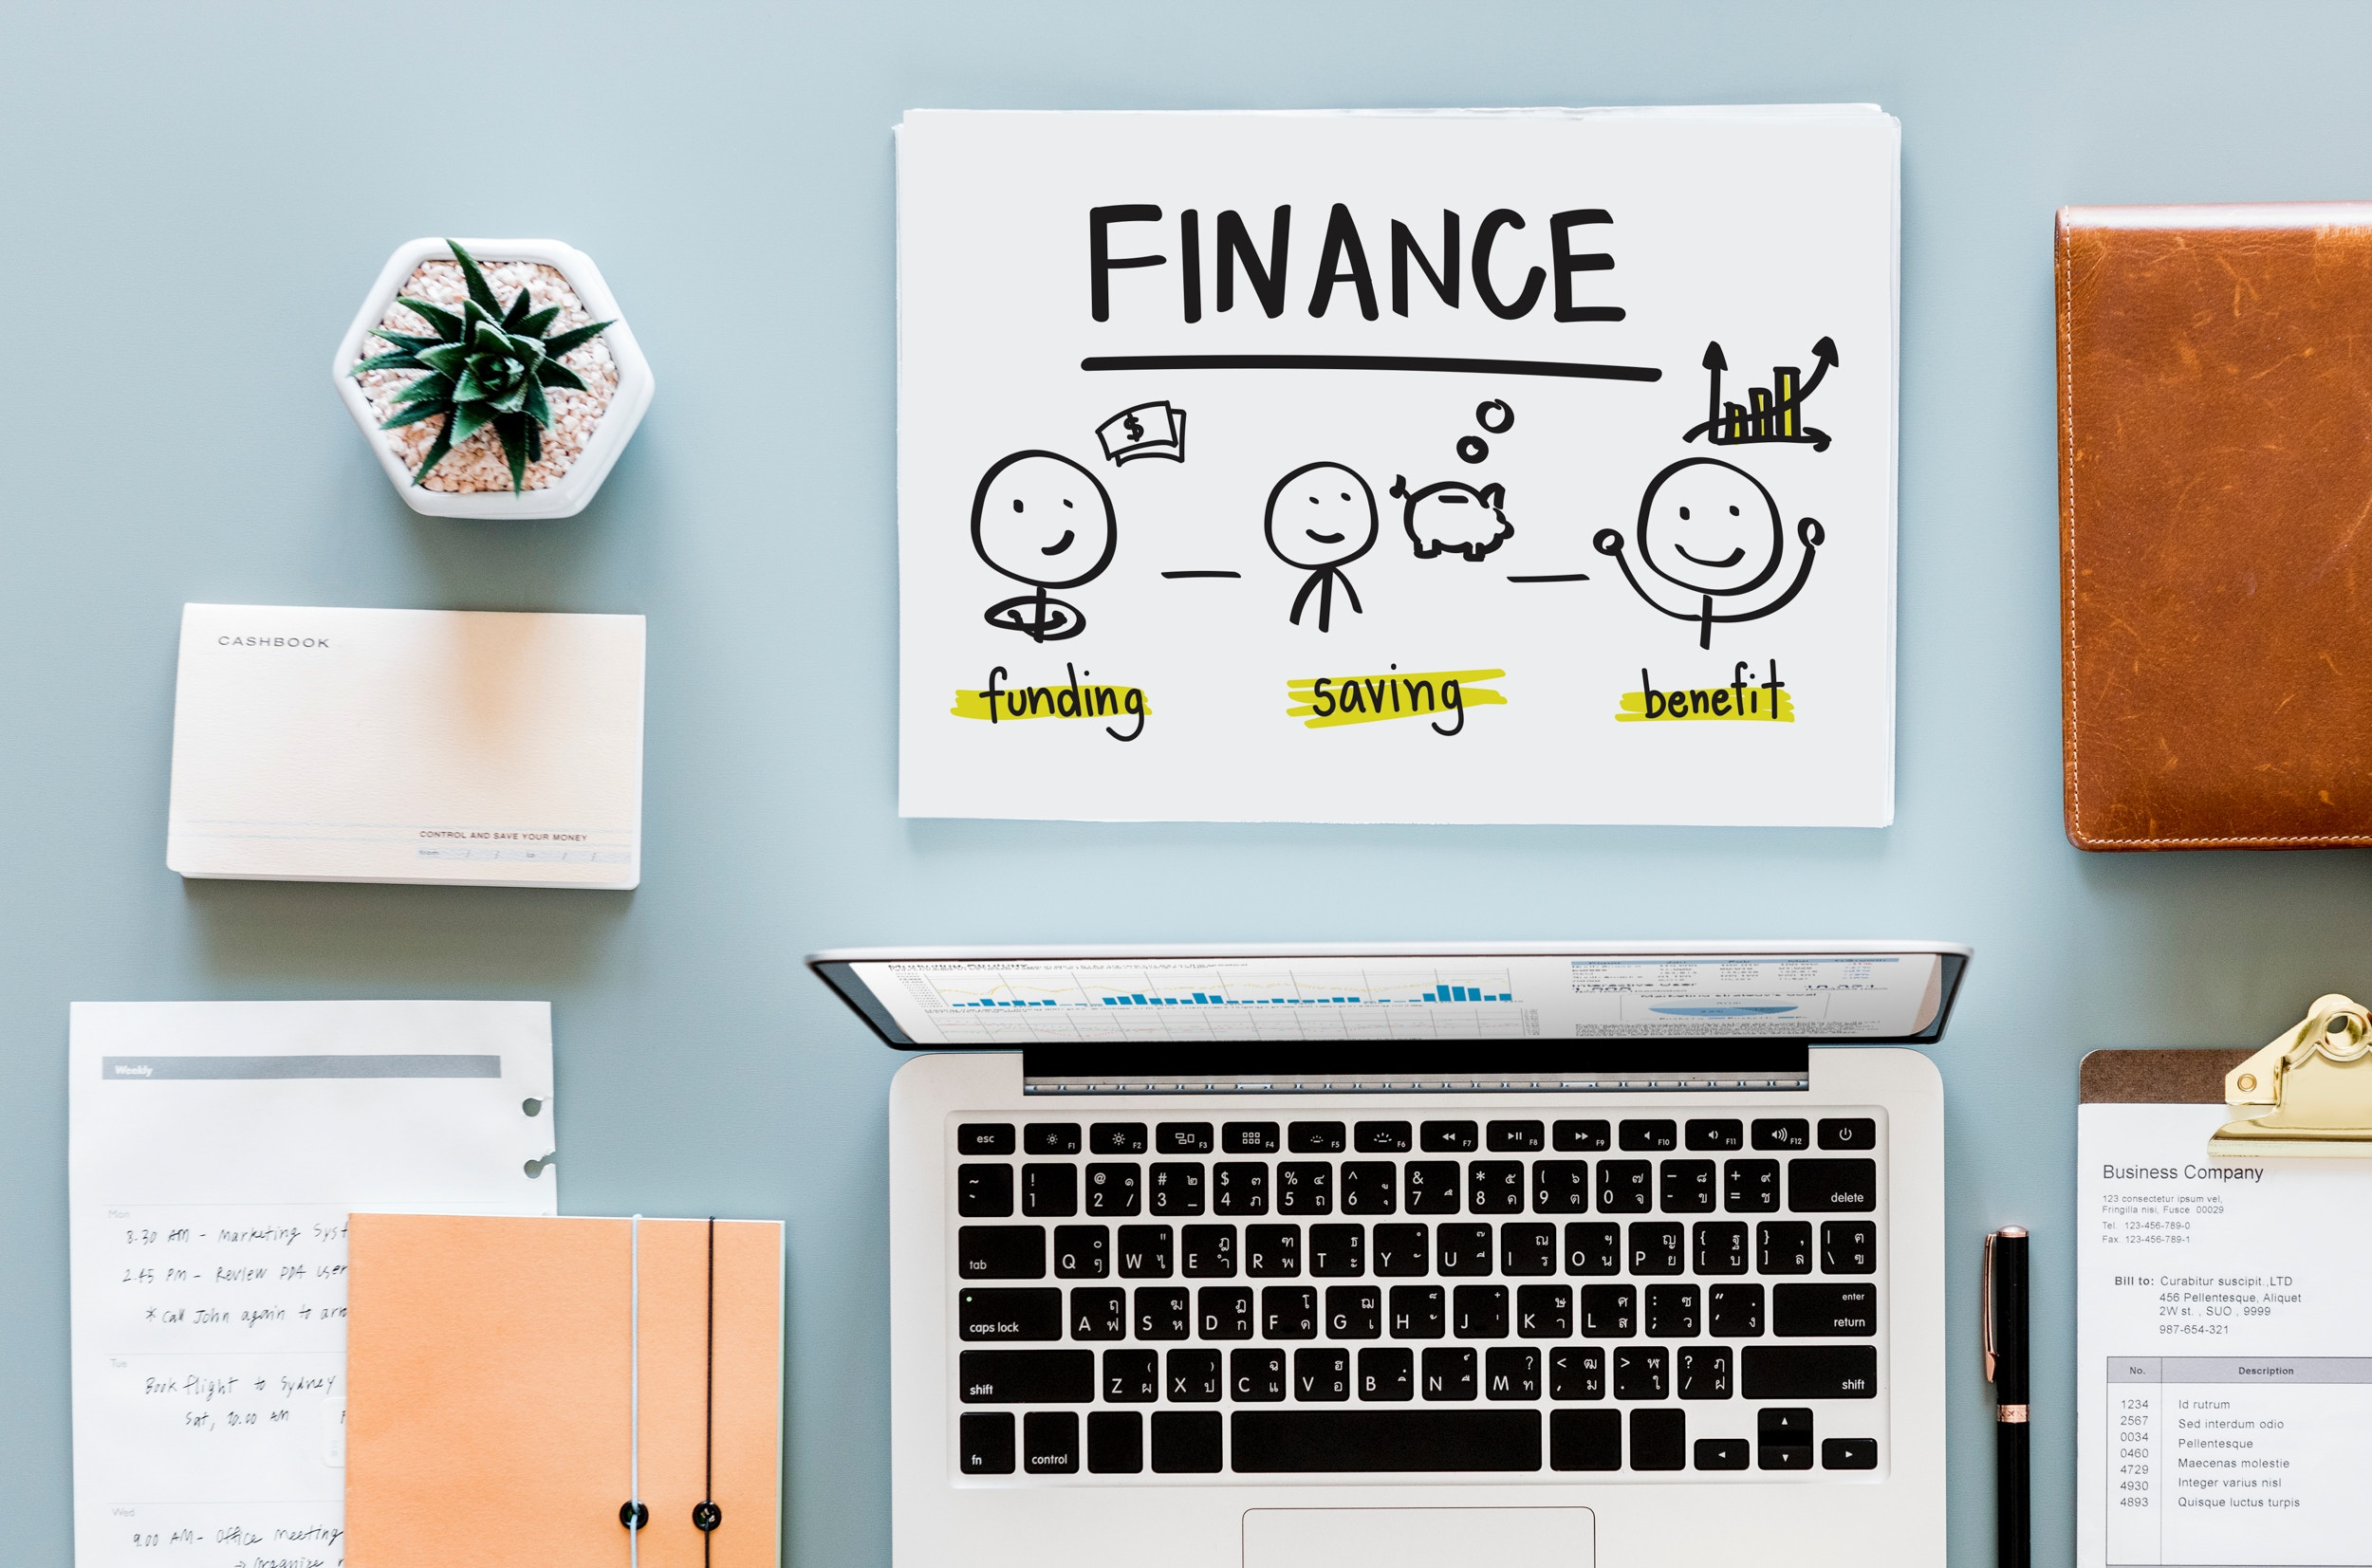 Does your workplace offer a financial wellness program?